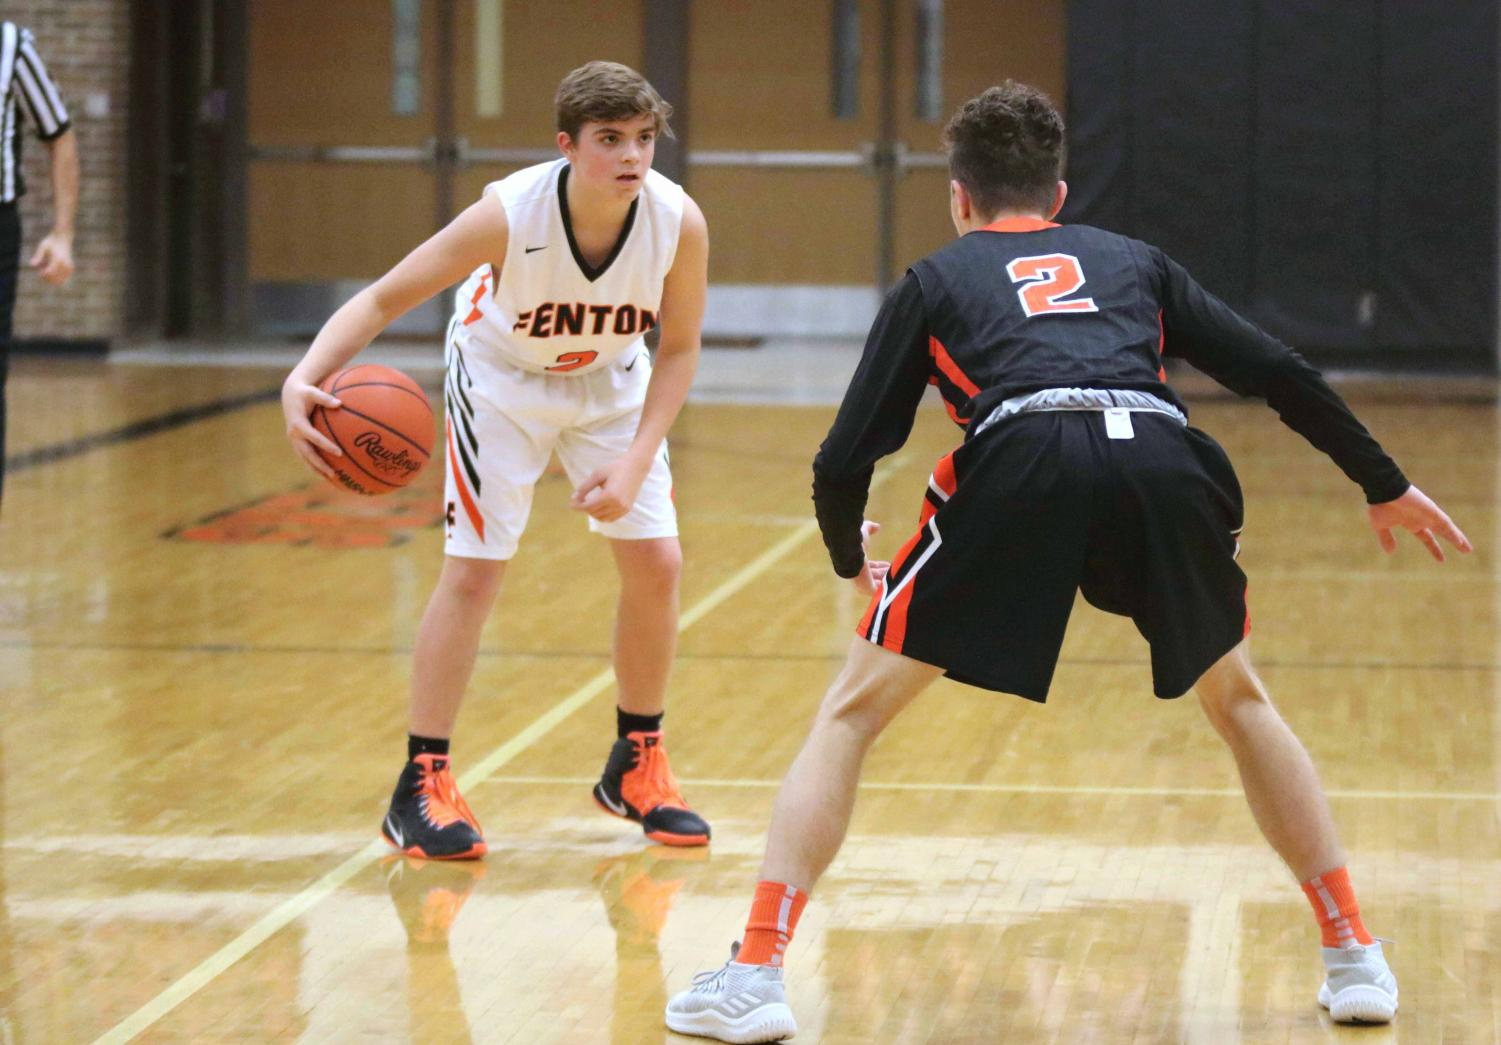 Dribbling the ball, freshman Seth Logan faces against a Flushing High basketball player. Fenton JV boys lost 36-32.